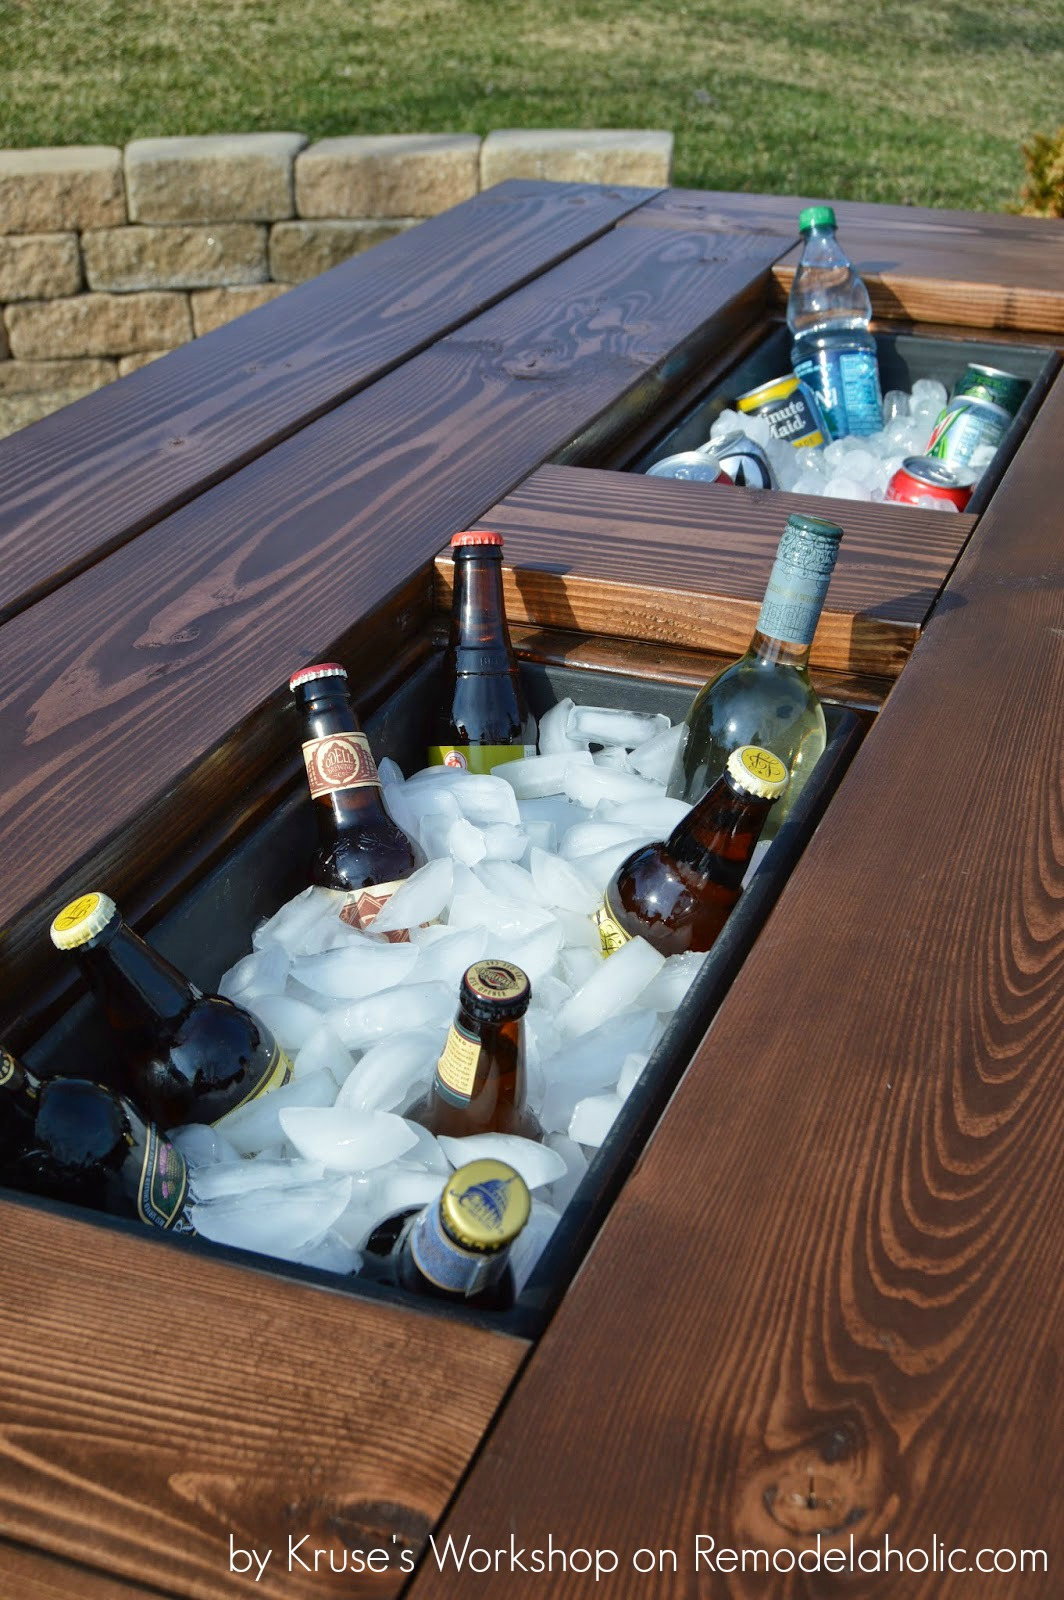 Remodelaholic  Building Plans Patio Table with Builtin Drink Coolers